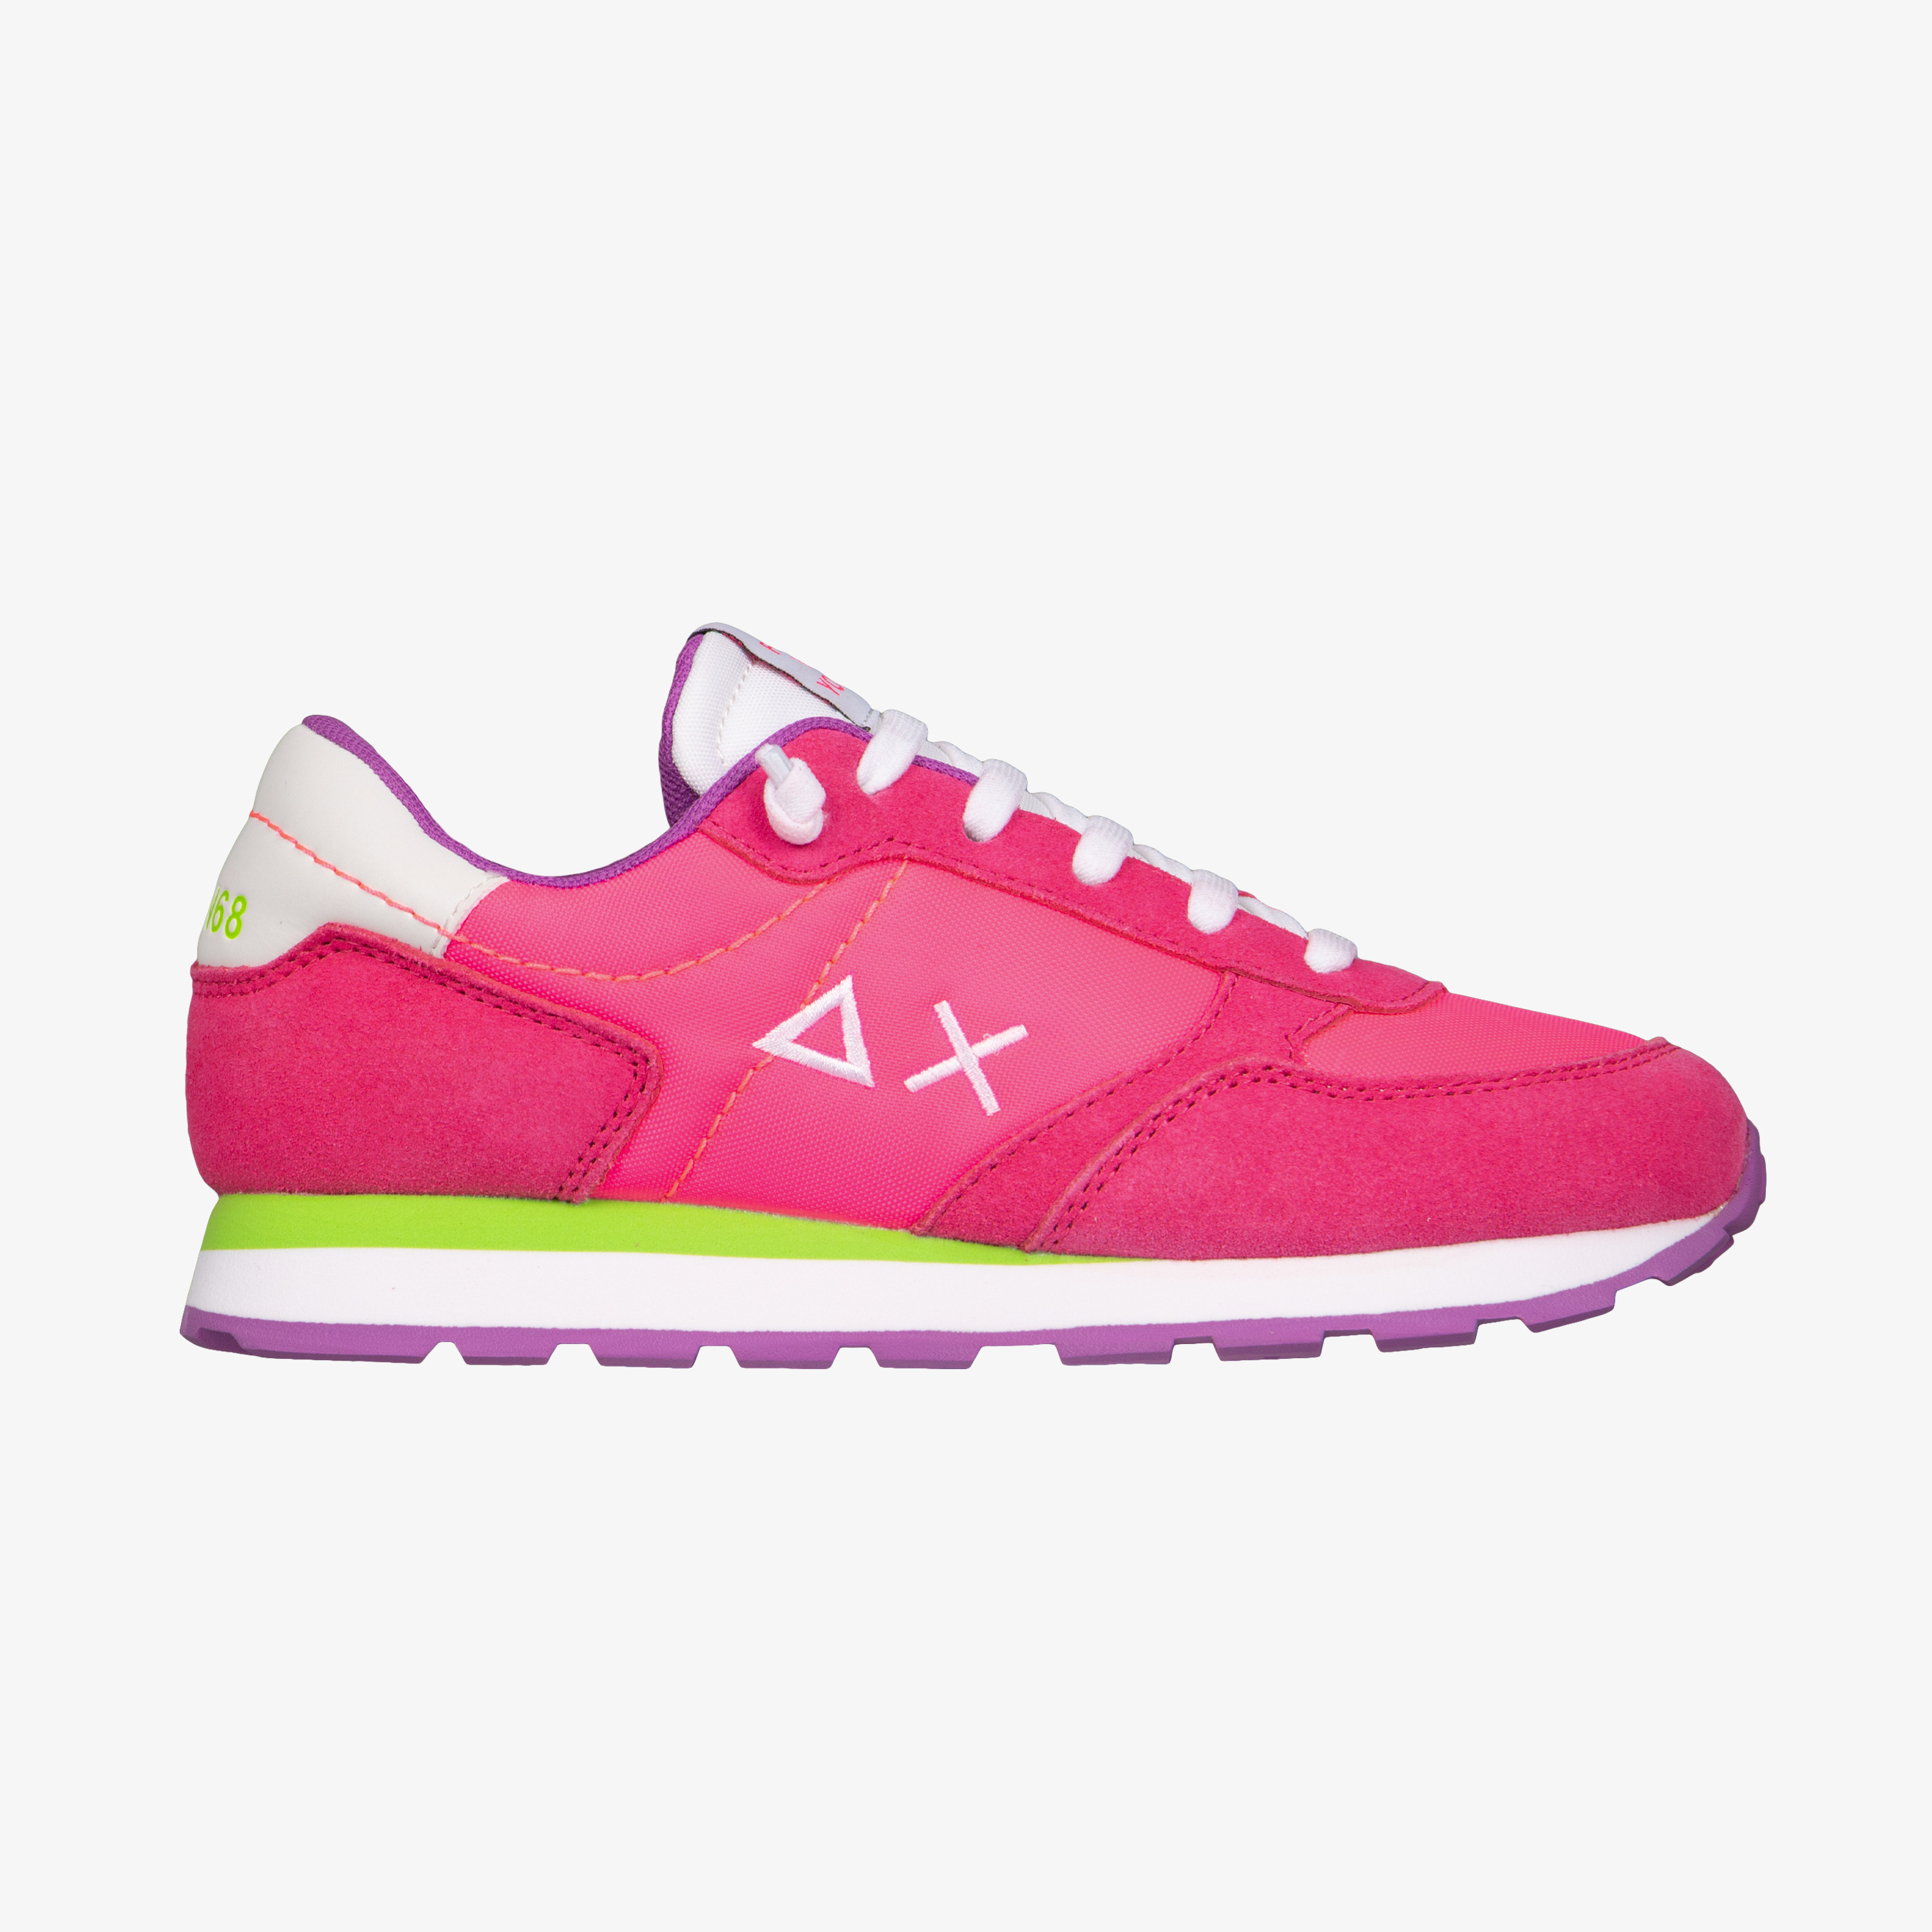 GIRL'S ALLY NYLON SOLID FUXIA FLUO